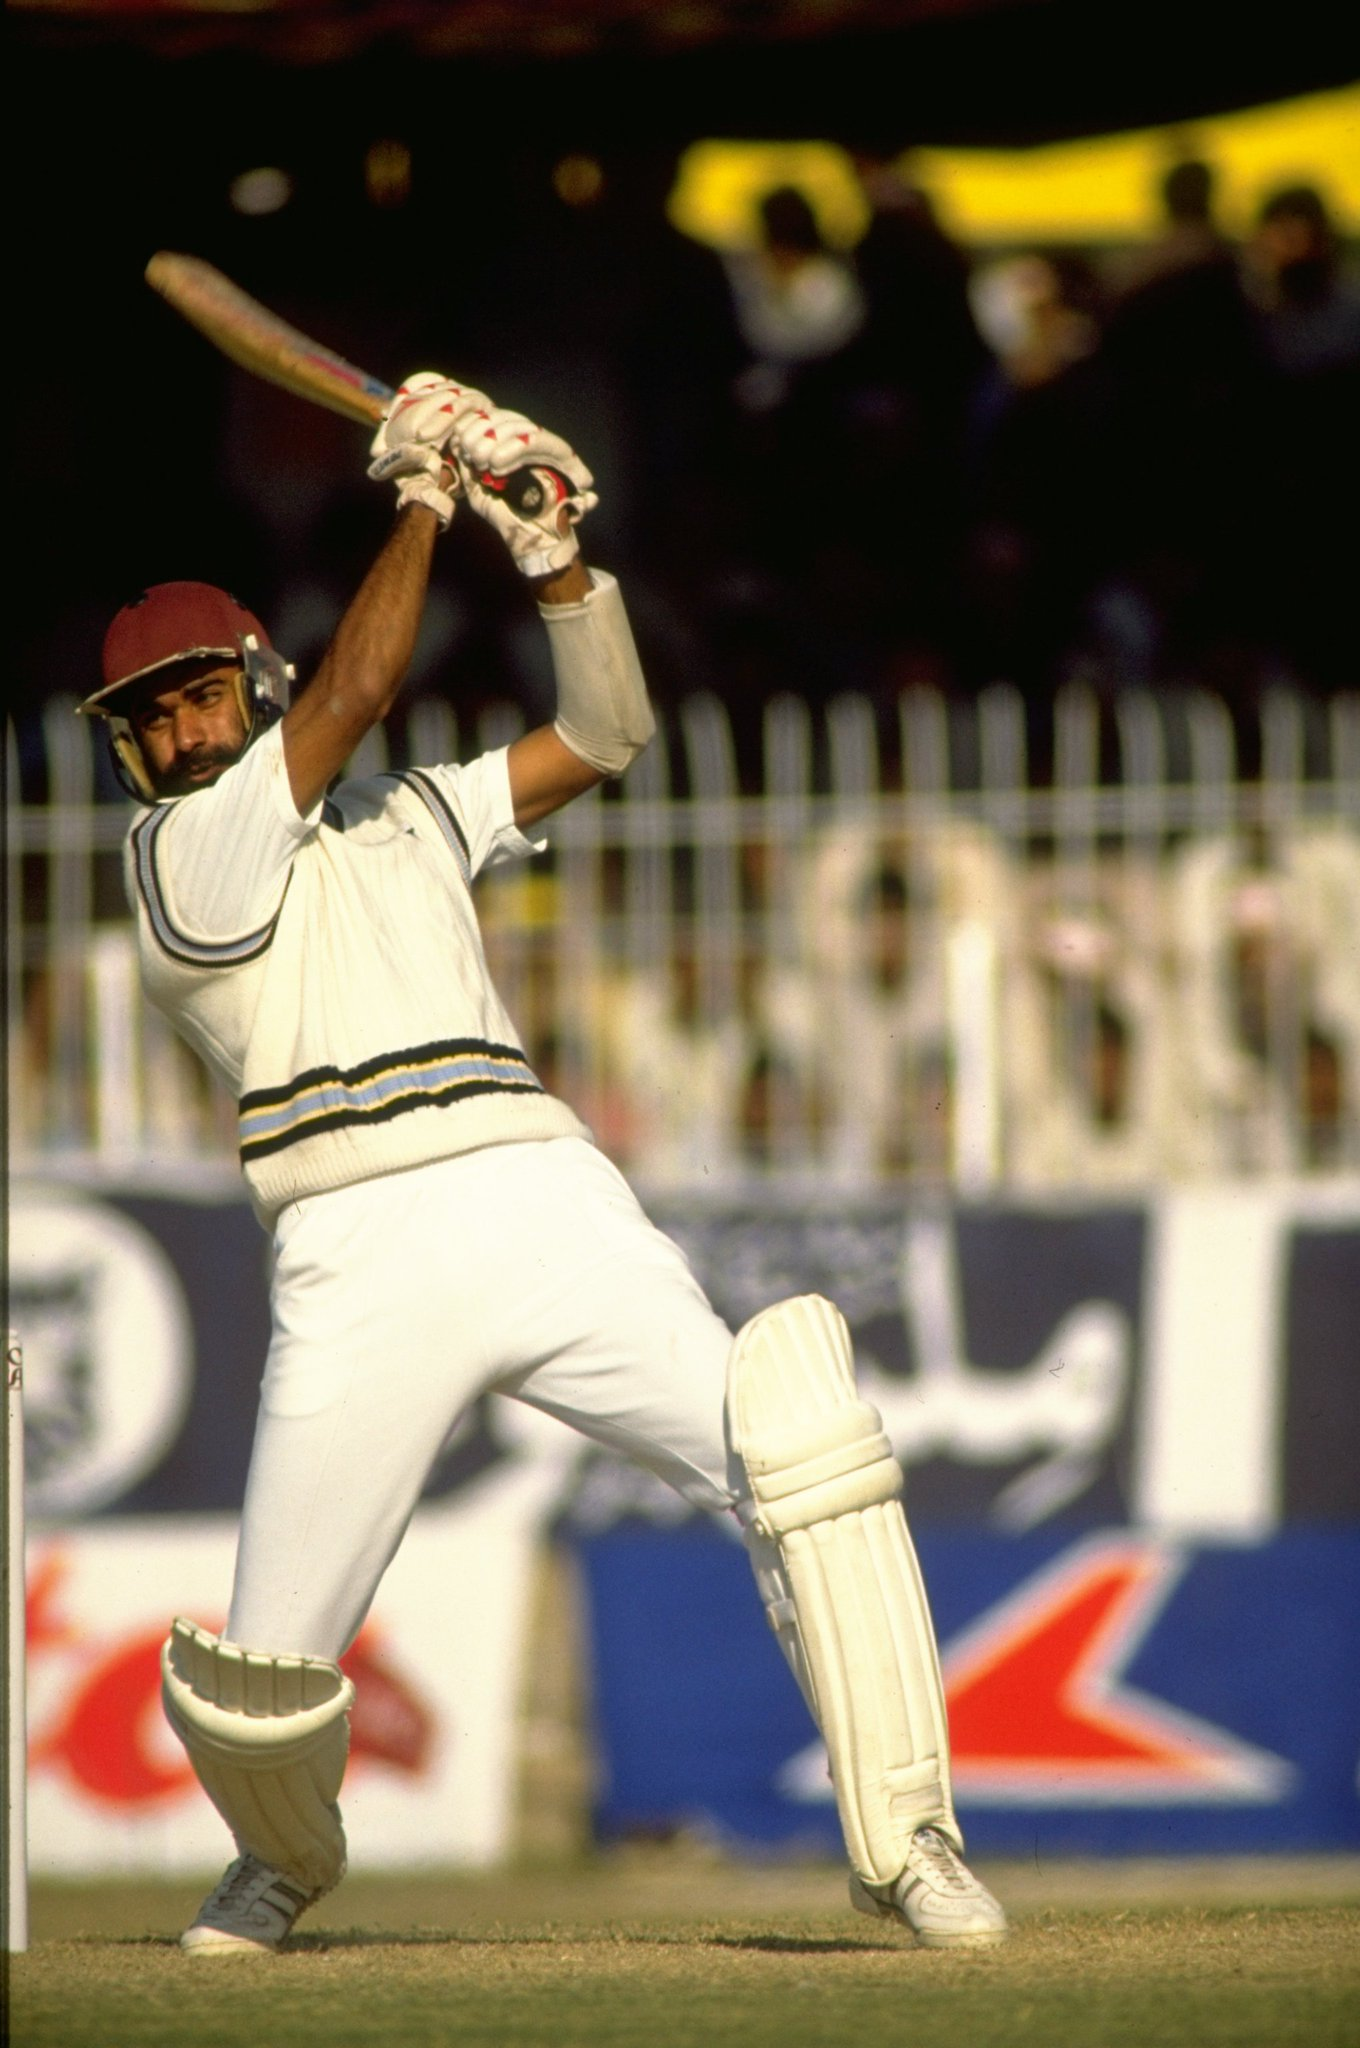 RT @ESPNIndia: Happy birthday to a batsman who gave spinners nightmares: Navjot Singh Sidhu! https://t.co/qTCi1d4njK